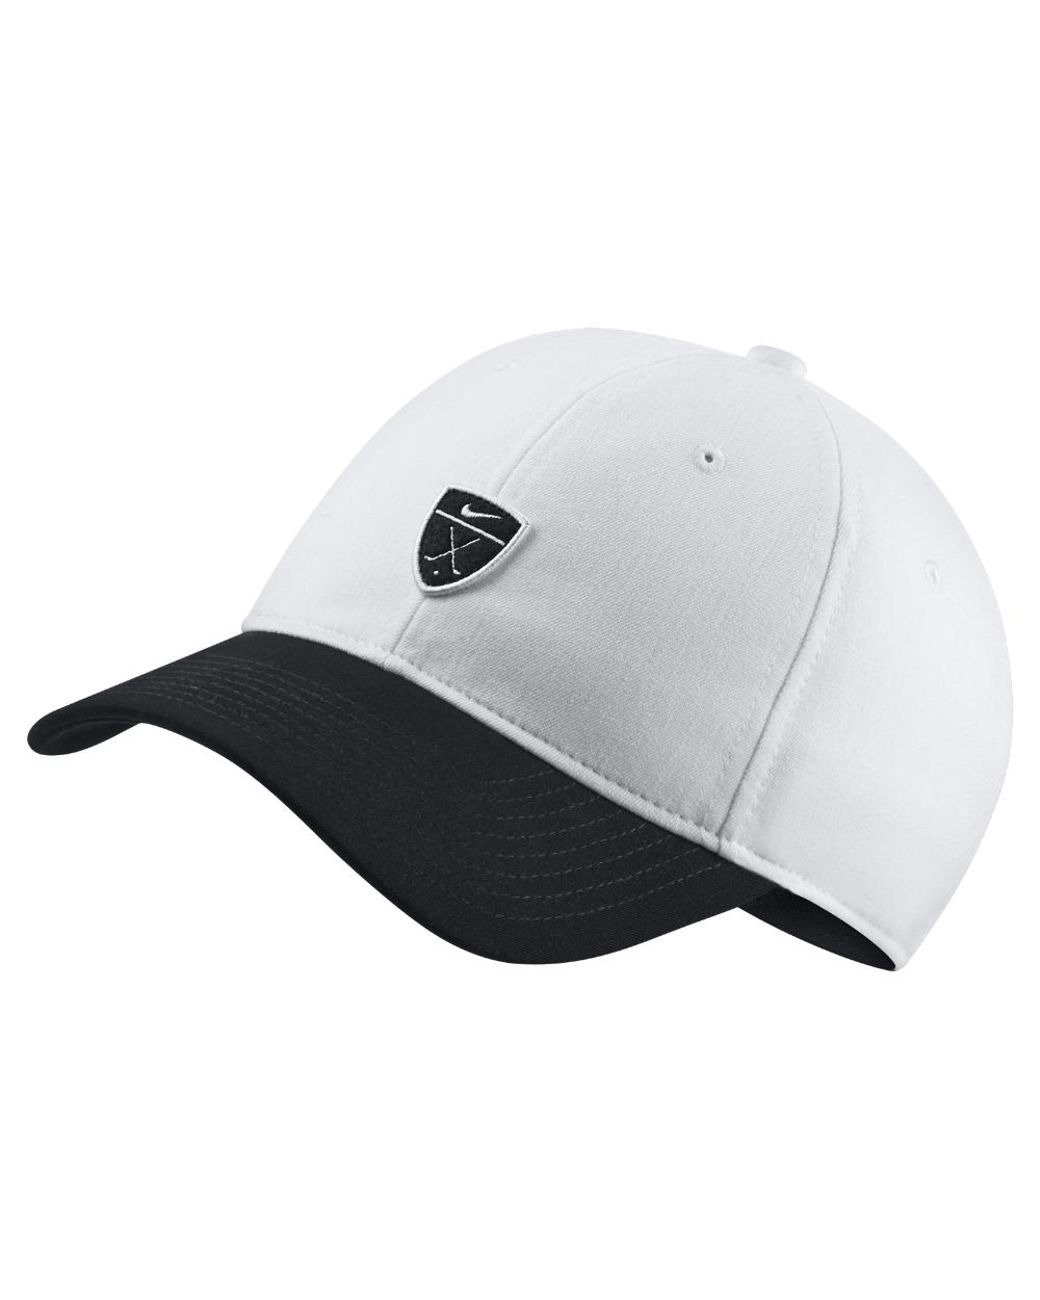 3b5af5eb6f9 Long-Touch to Zoom. Nike - Black Dri-fit Heritage86 Adjustable Golf Hat ...